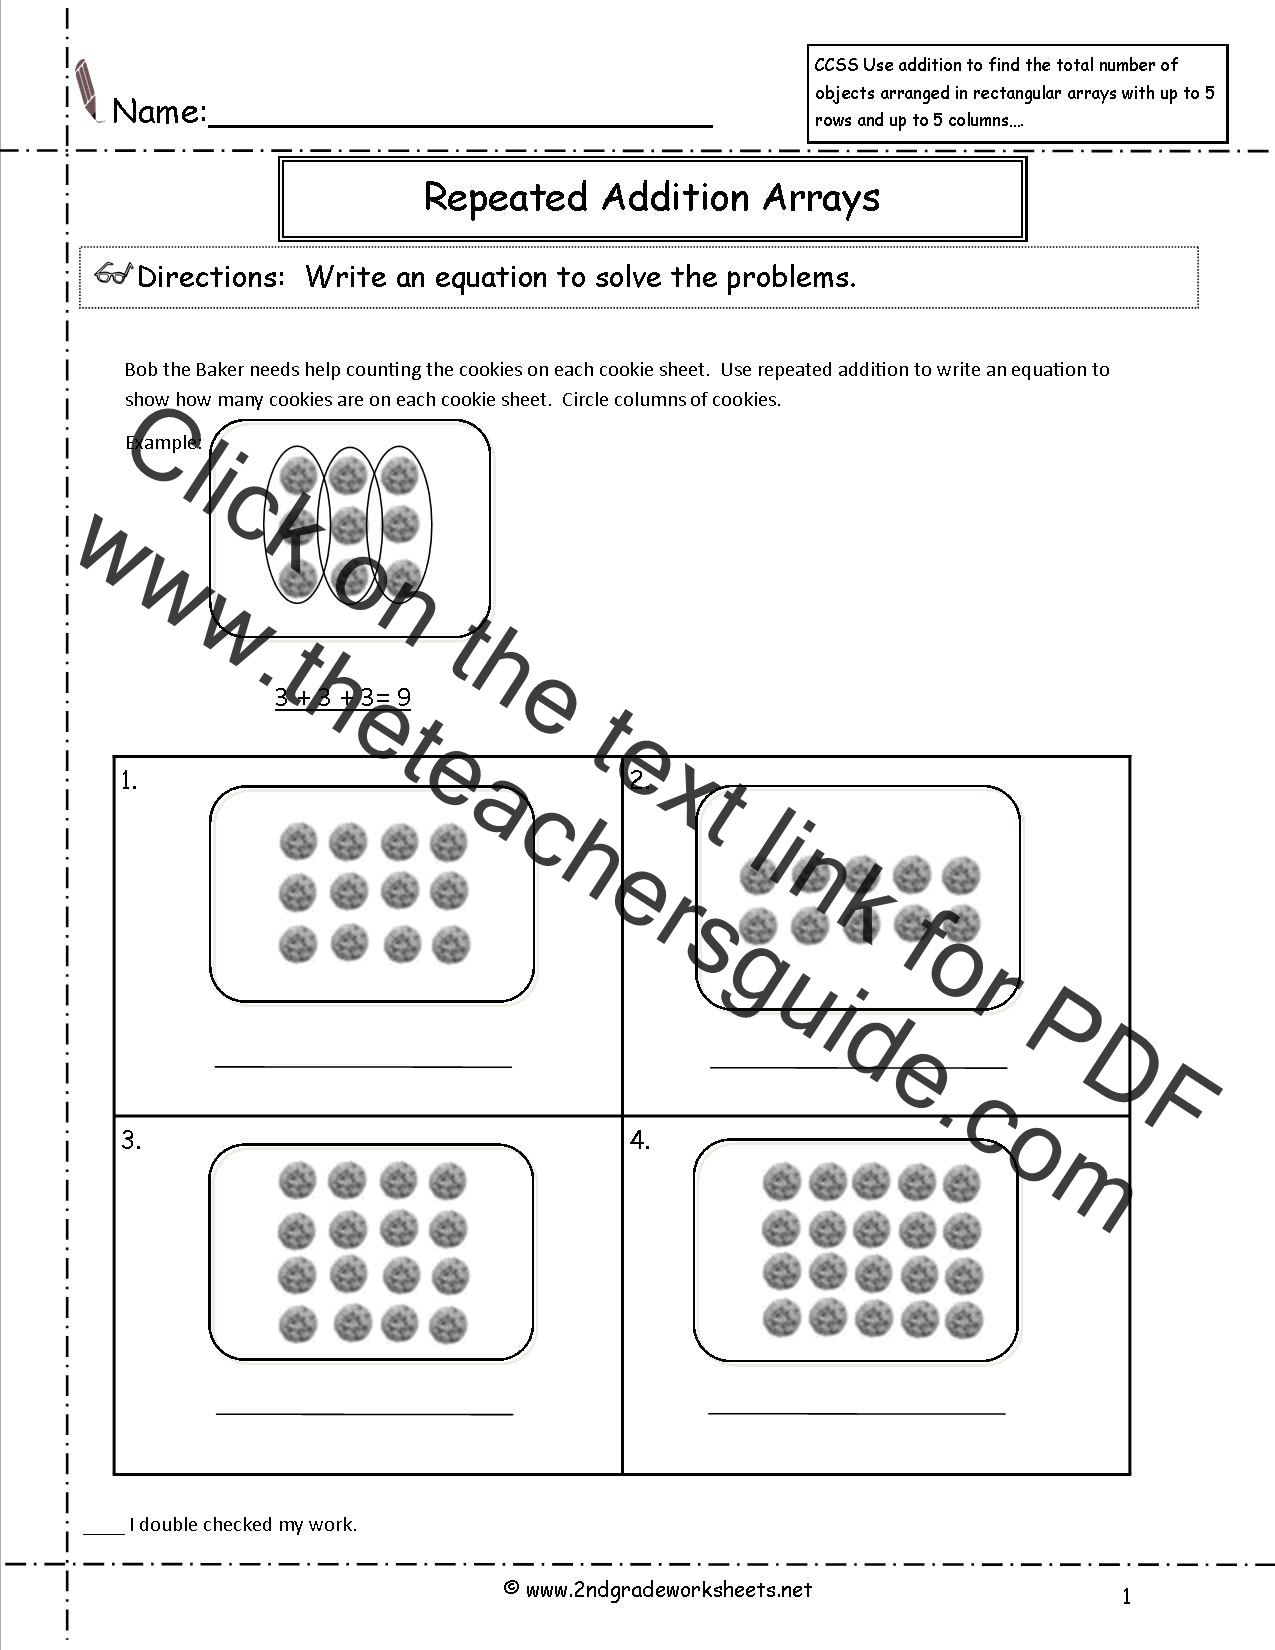 Worksheets Common Core Math Worksheets For 3rd Grade 2nd grade math common core state standards worksheets ccss 2 oa 4 worksheets